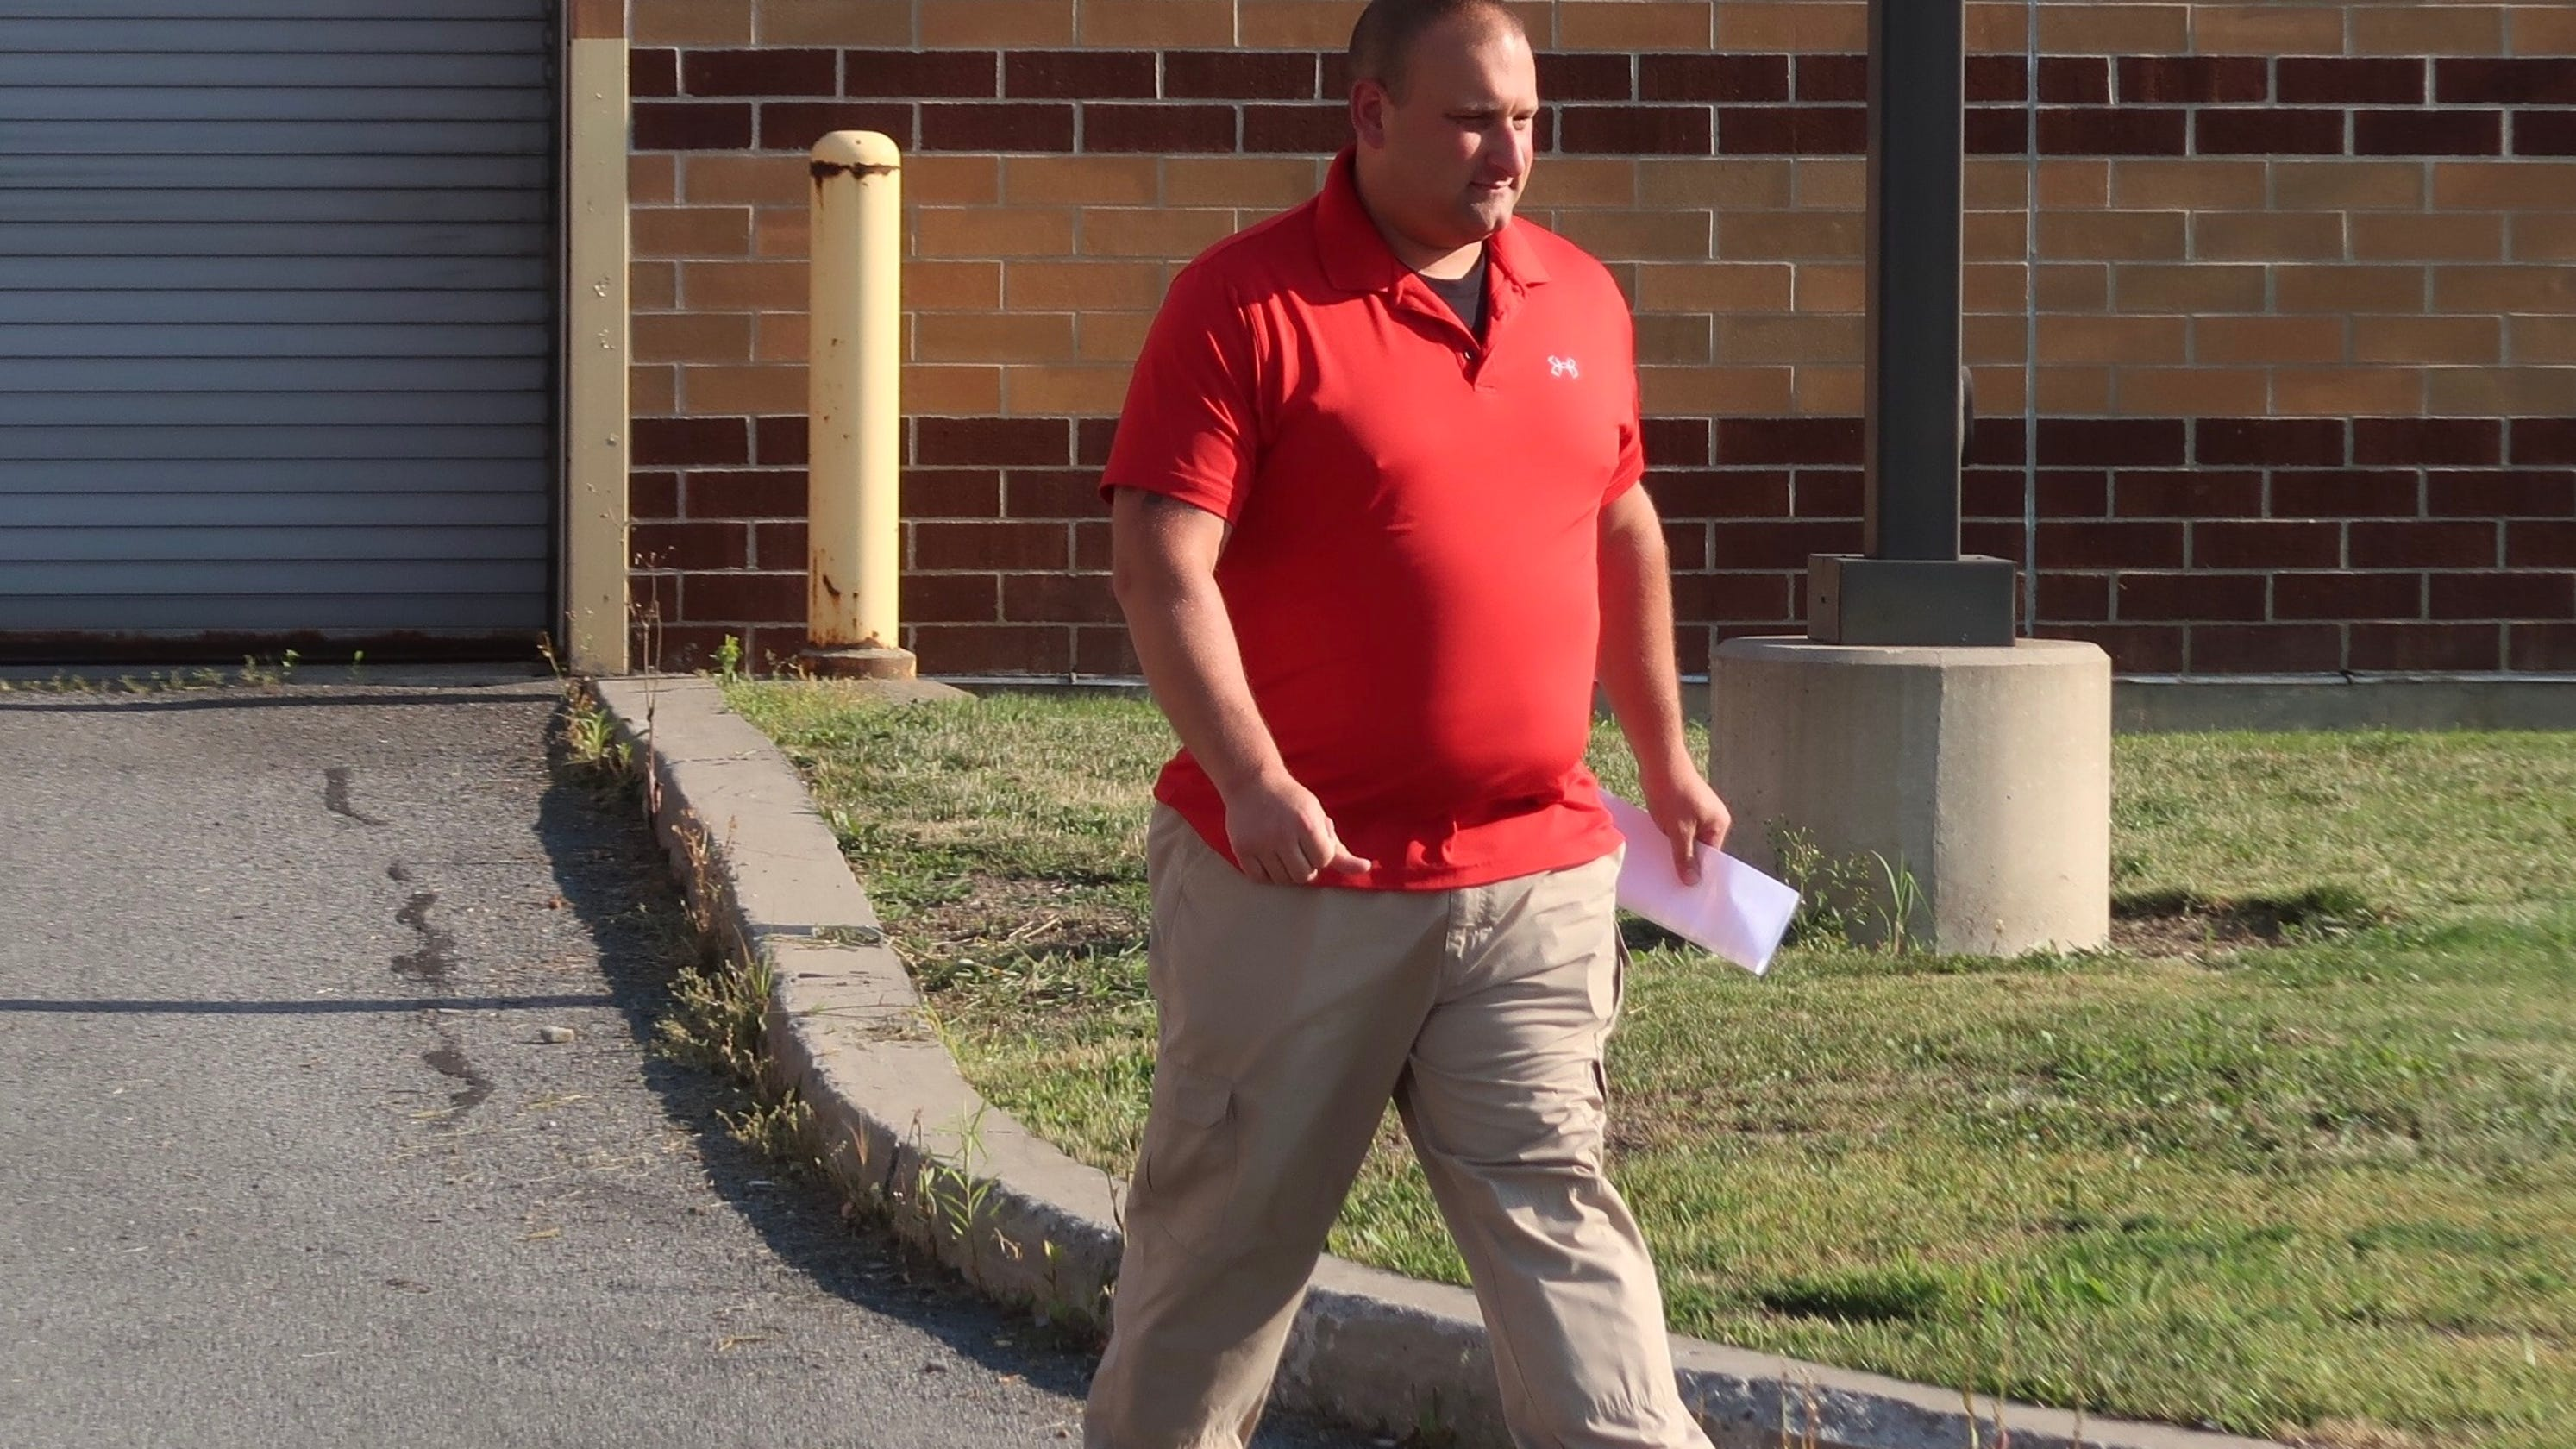 Geneva officer accused of using 'unnecessary force' during